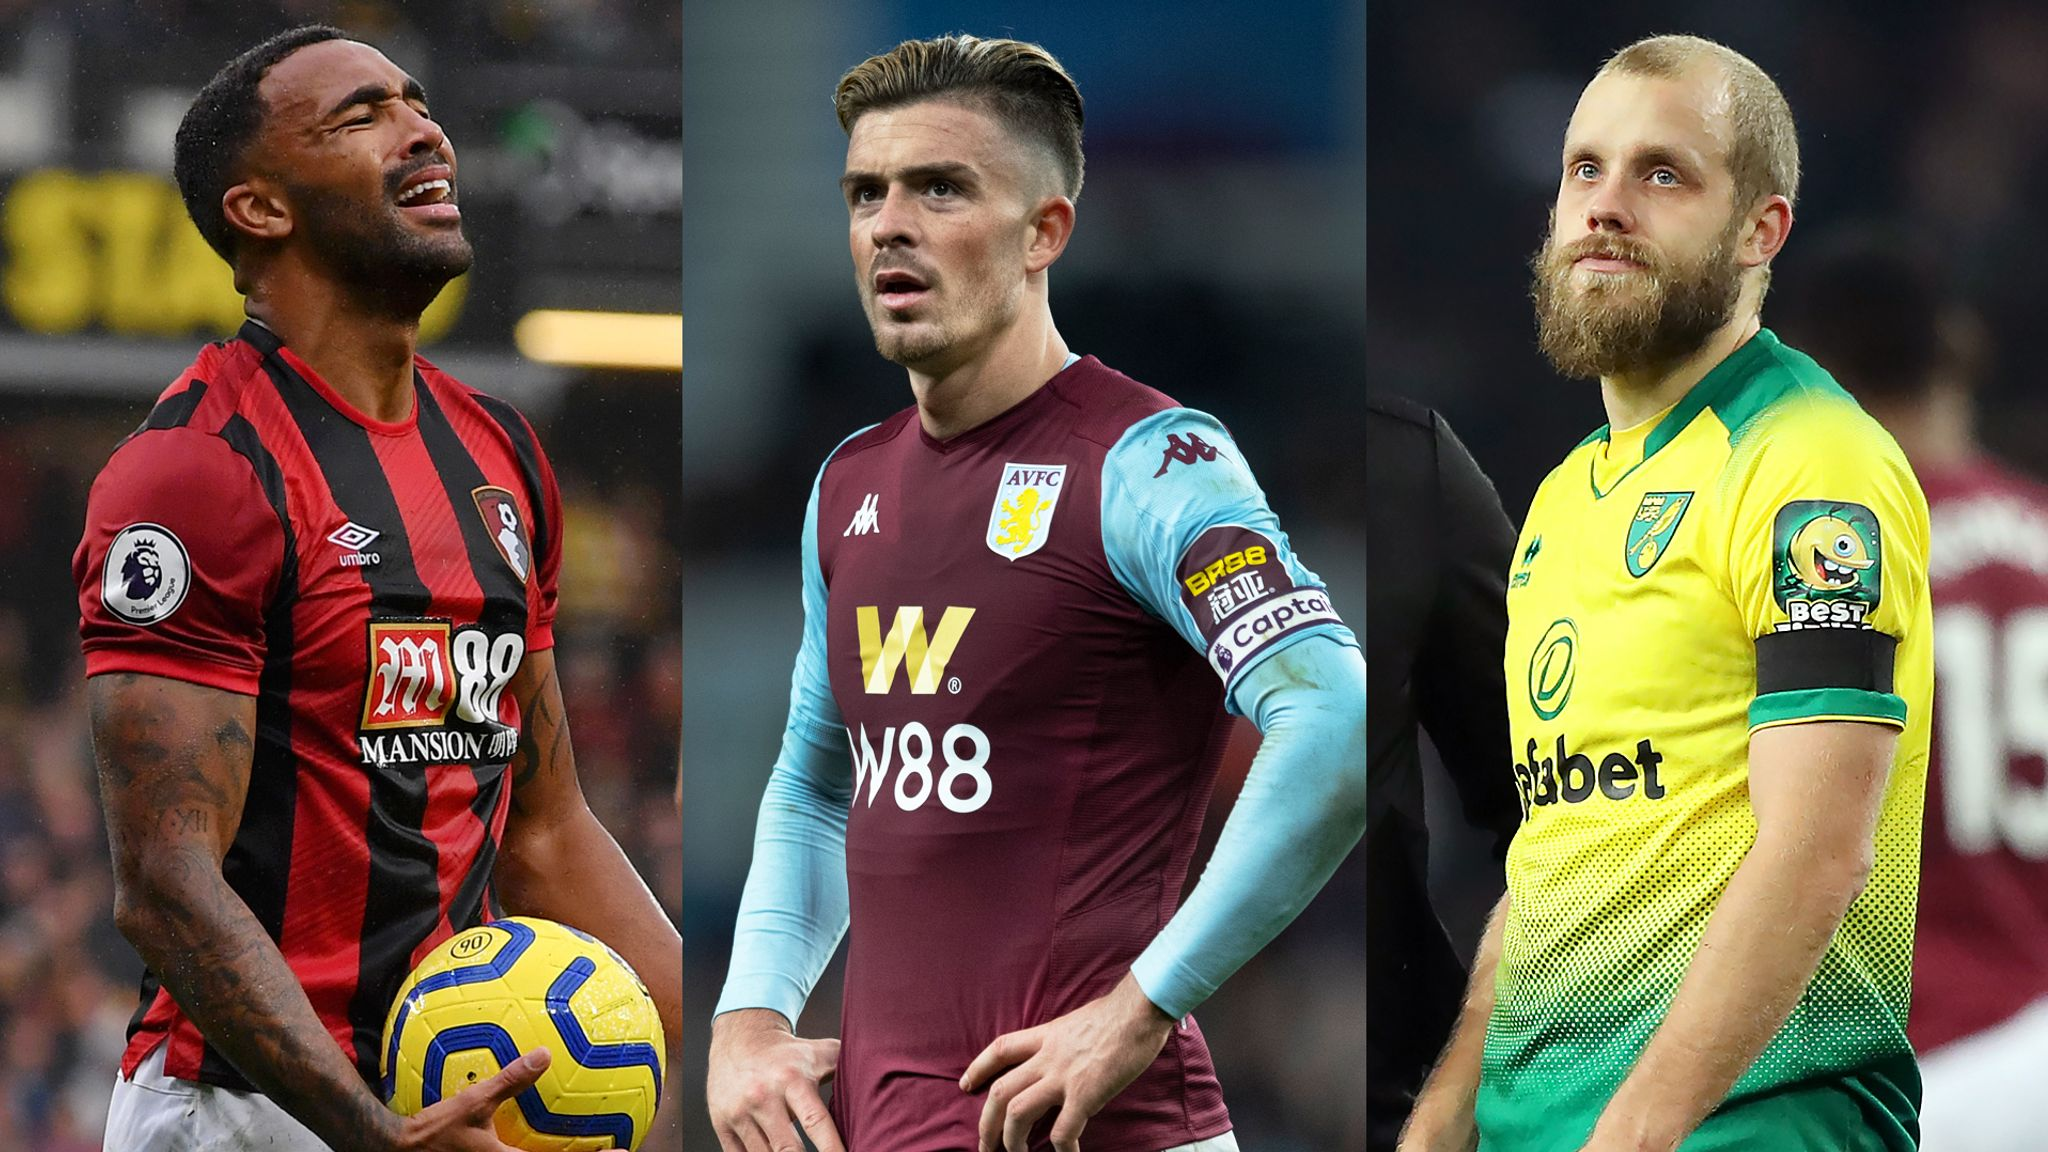 Premier League Restart How To Watch Free To Air Games On Sky Pick